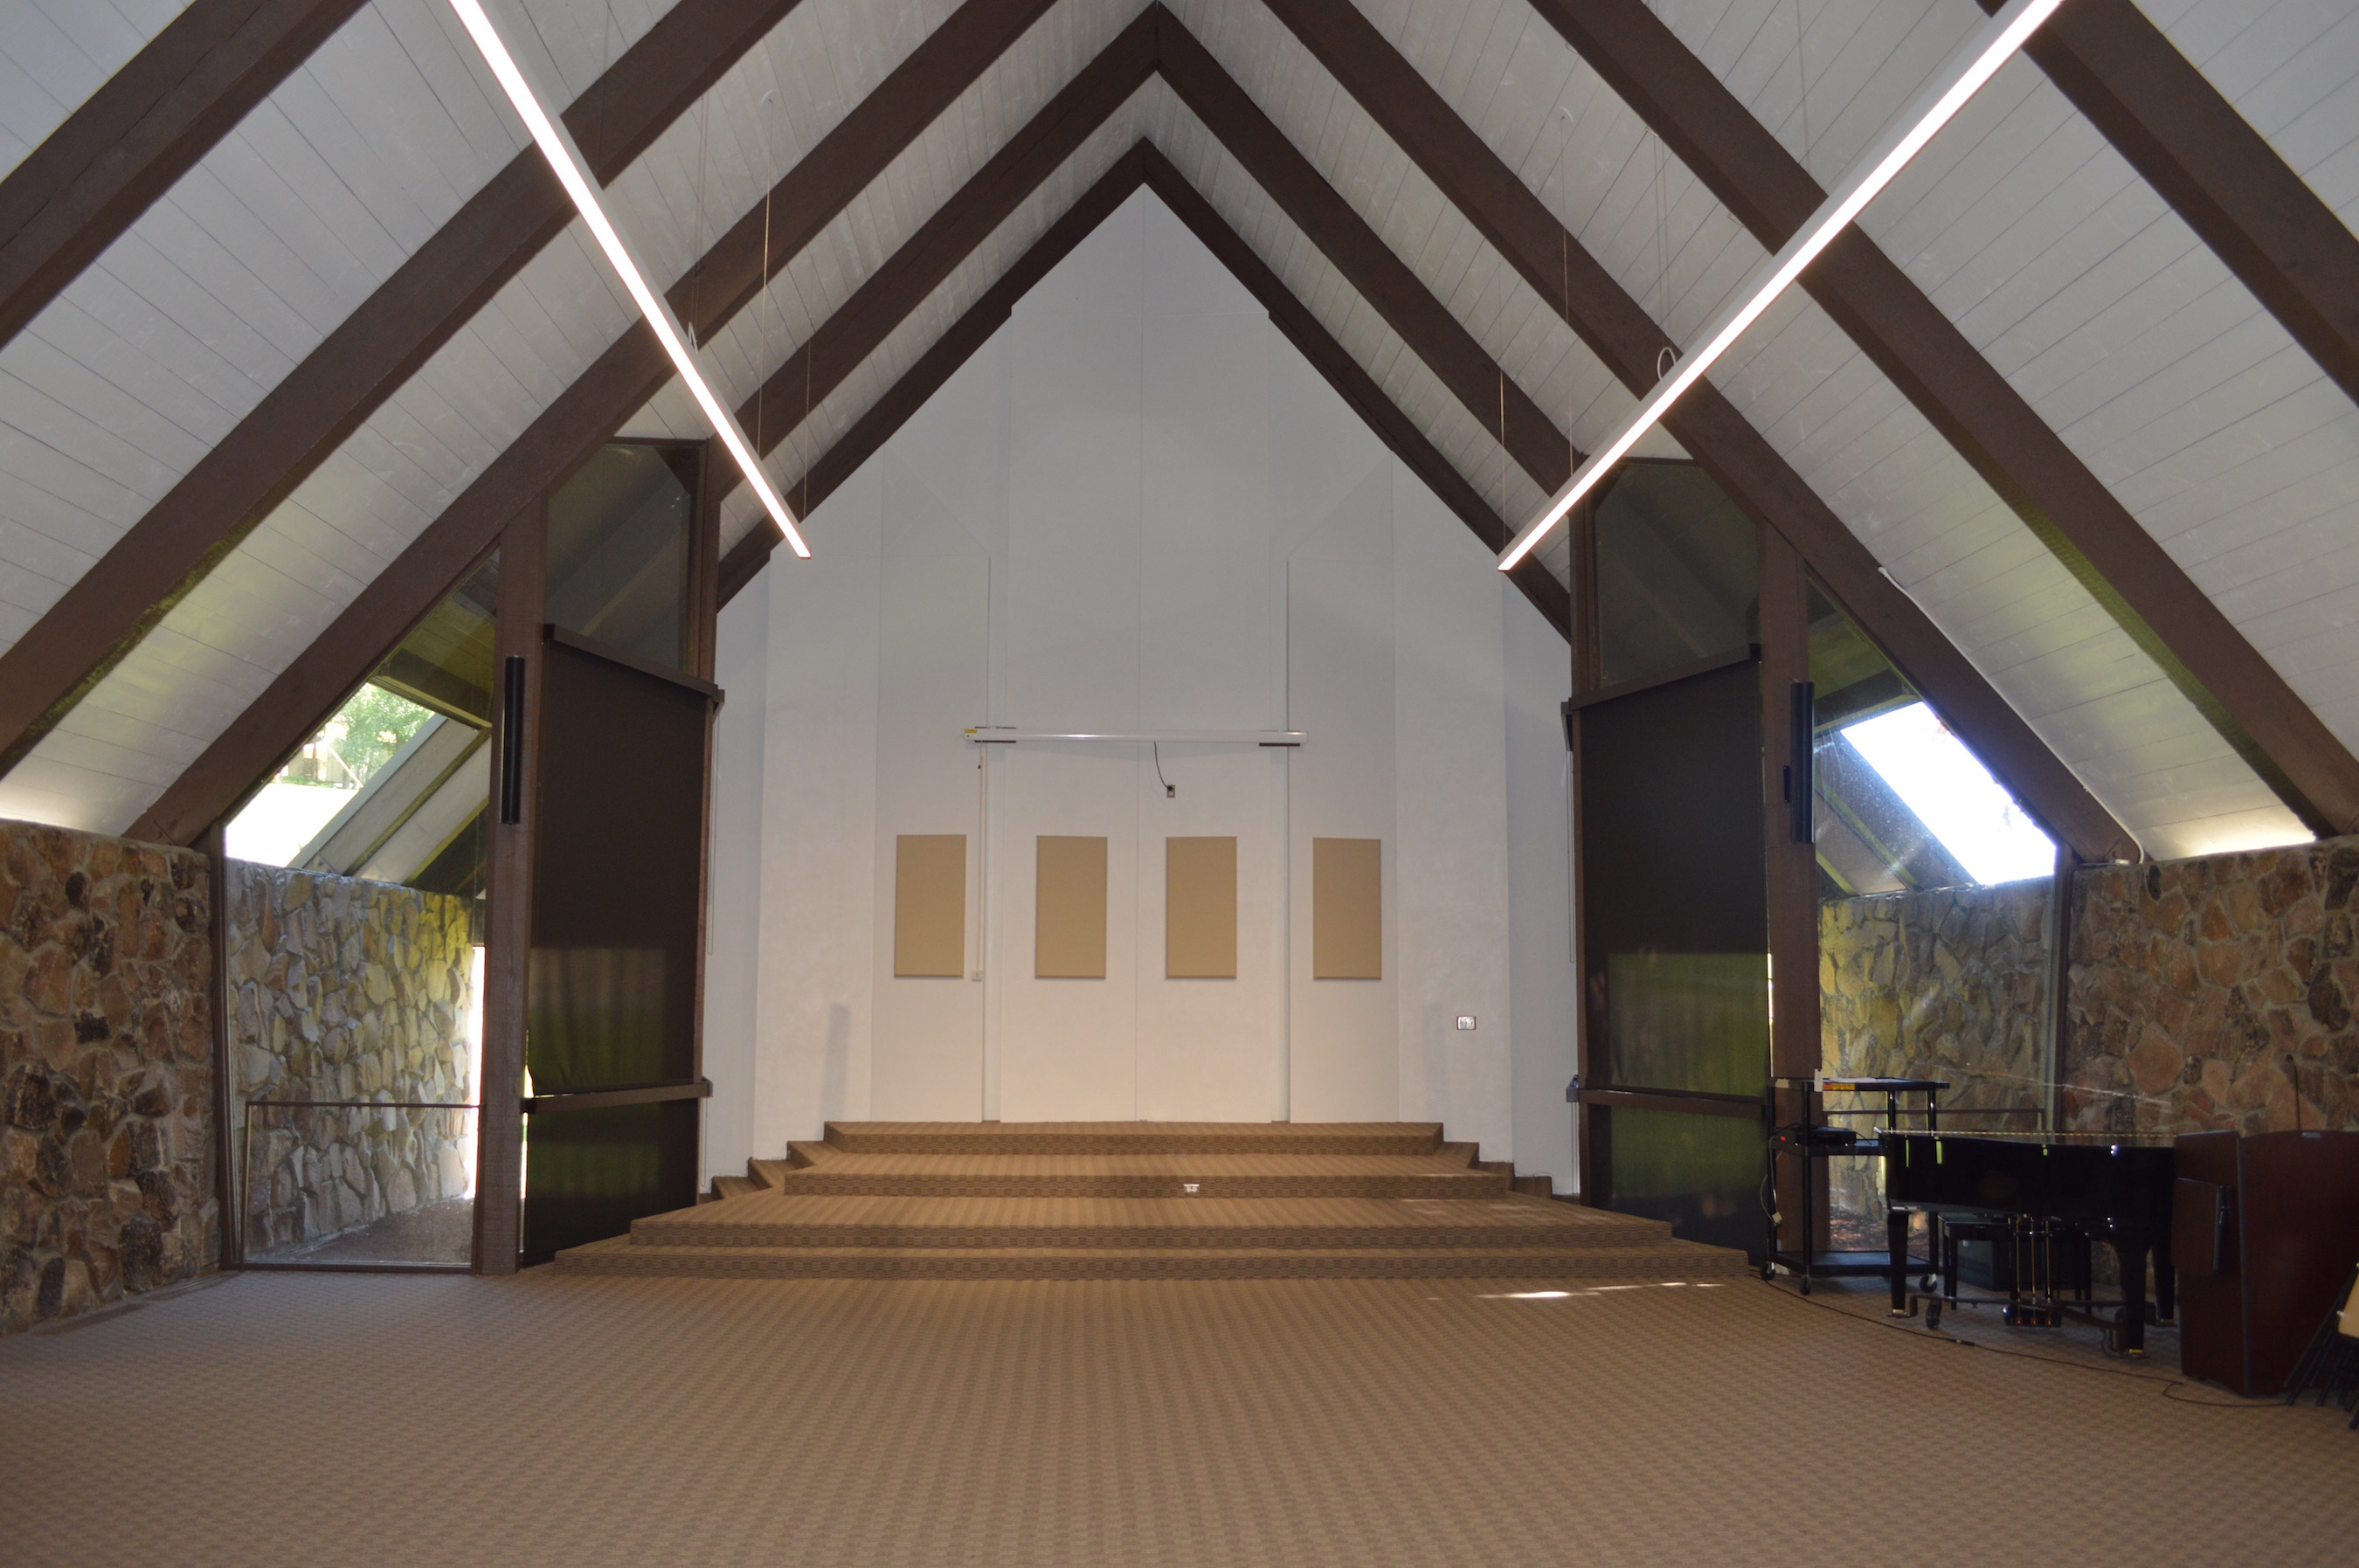 state-hospital-chapel-south-view-stage-2-copy